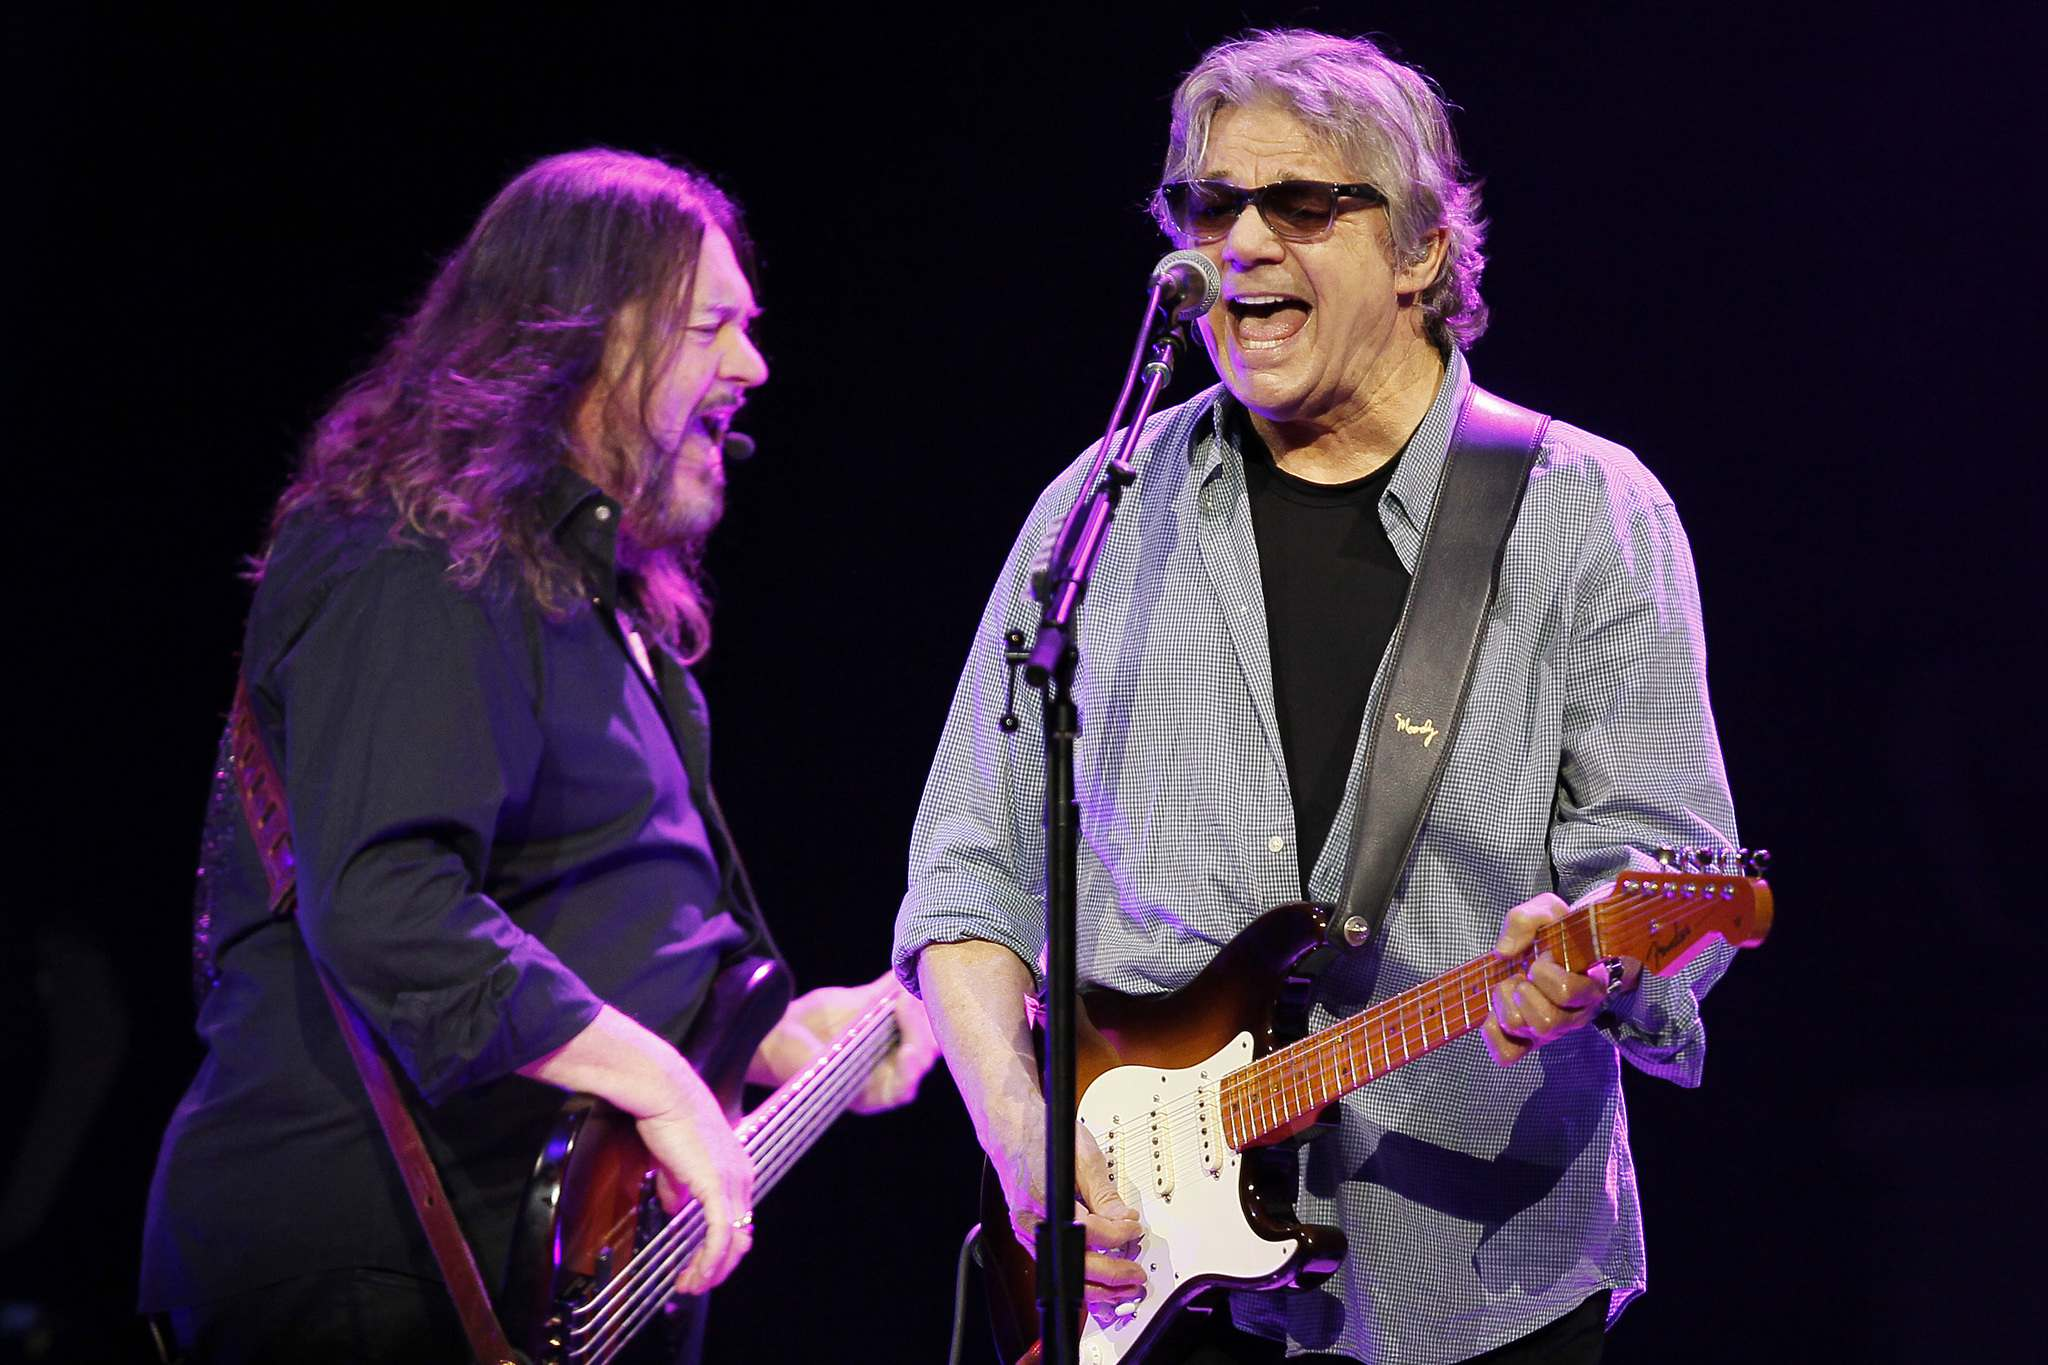 Steve Miller, Peter Frampton double bill hitting Winnipeg